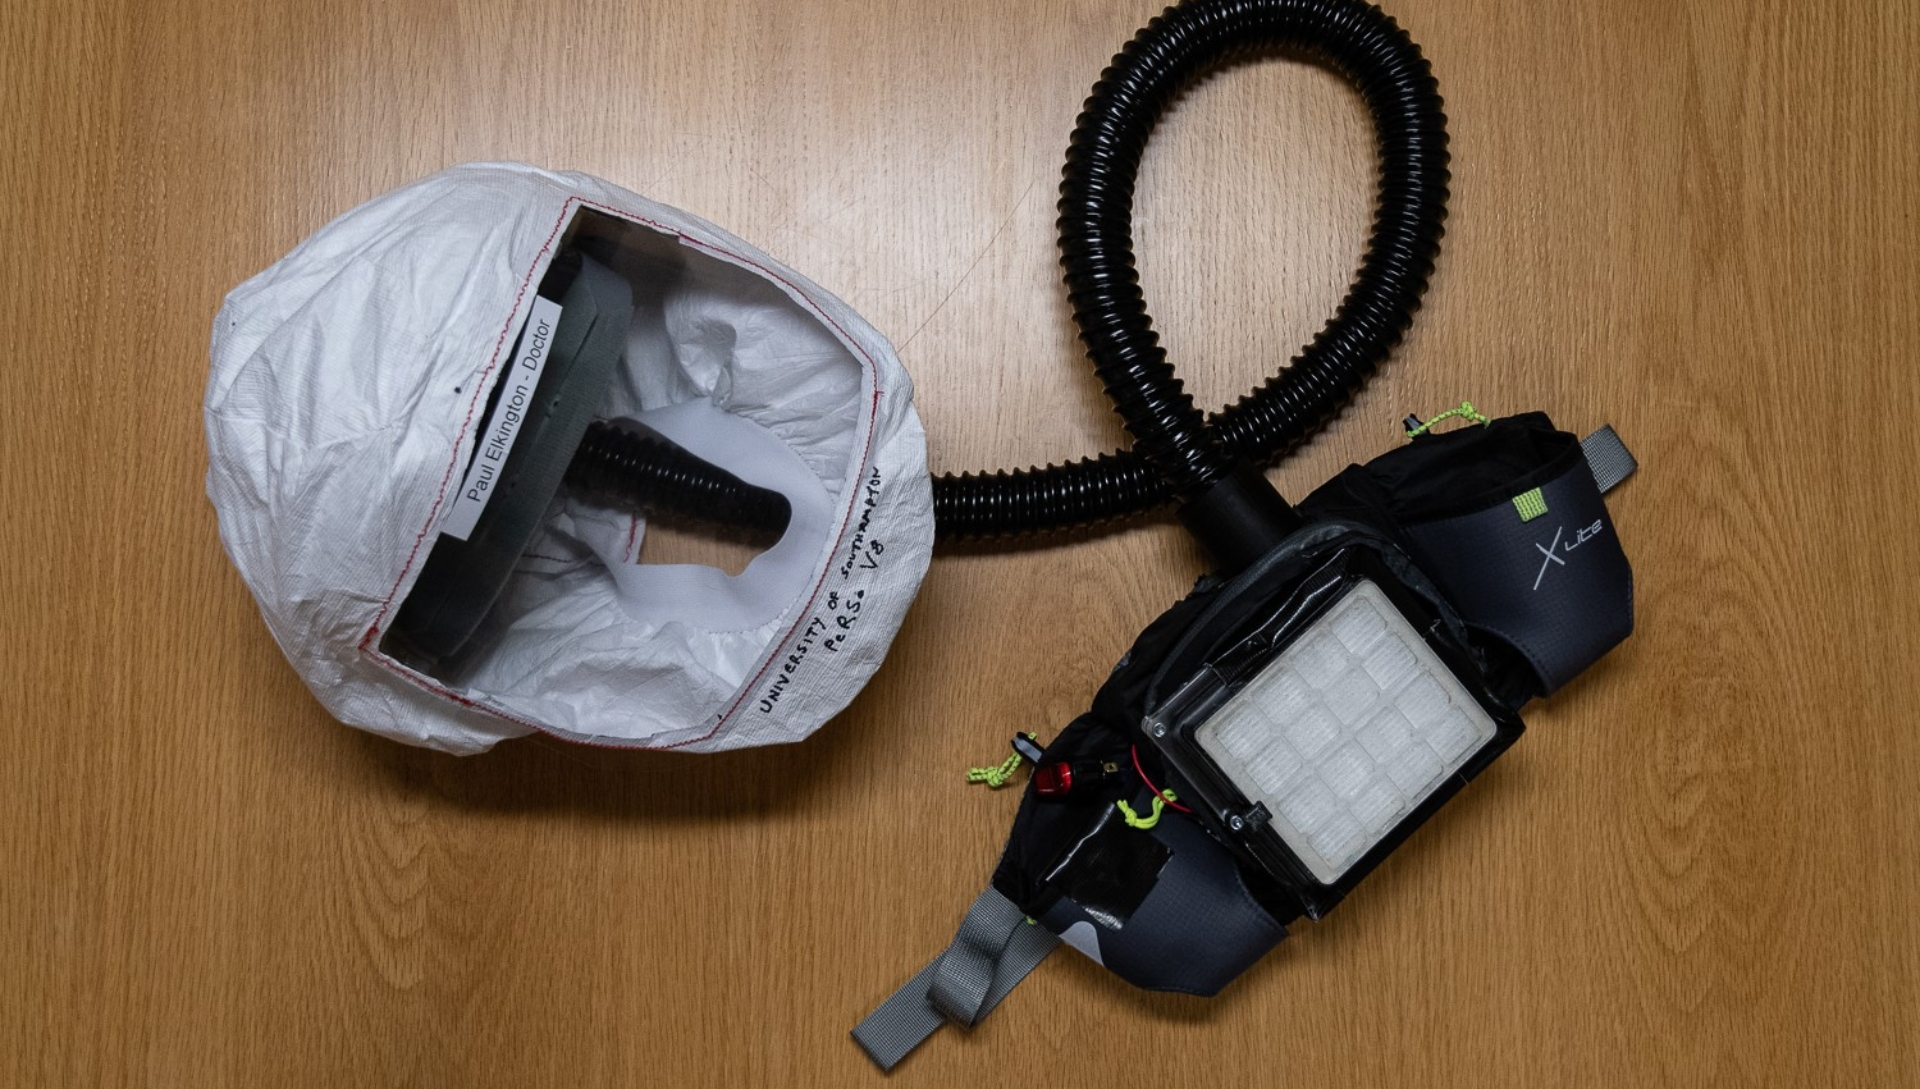 pioneering protective respirator developed in Southampton